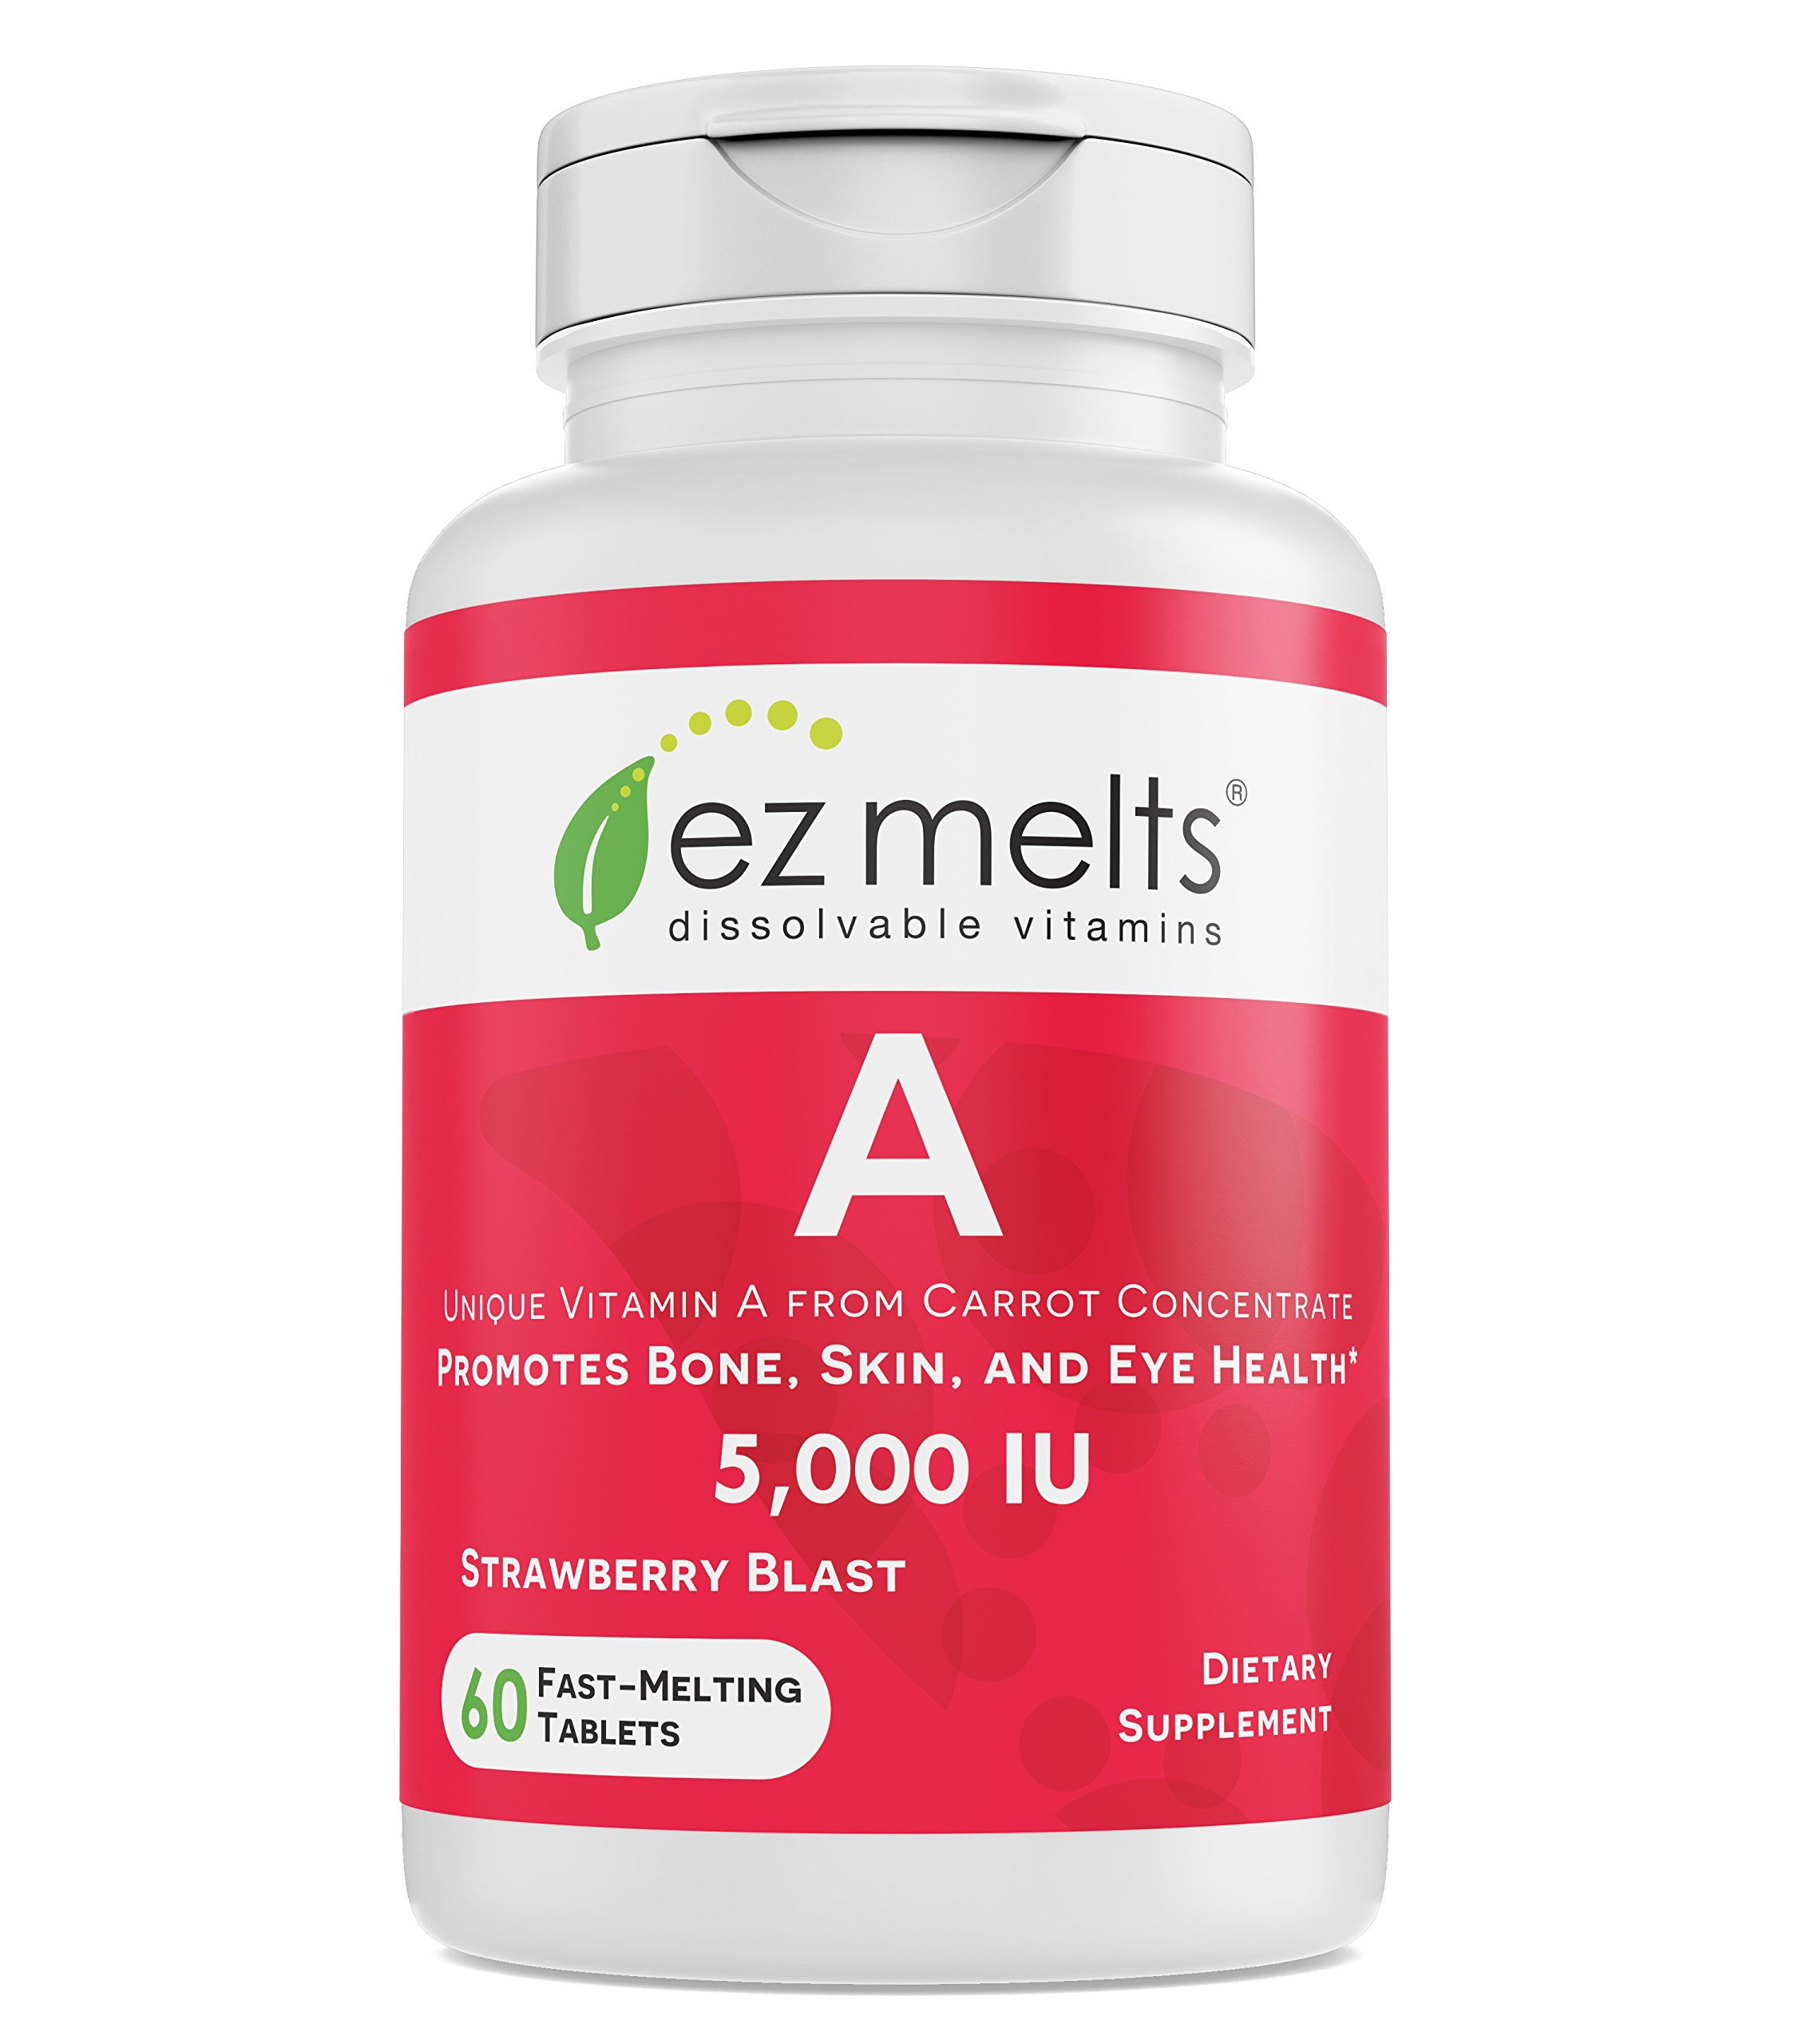 EZ Melts A as Retinol from Carrot Concentrate, 5,000 IU, Sublingual Vitamins, Vegan, Zero Sugar, Natural Strawberry Flavor, 60 Fast Dissolve Tablets by EZ Melts